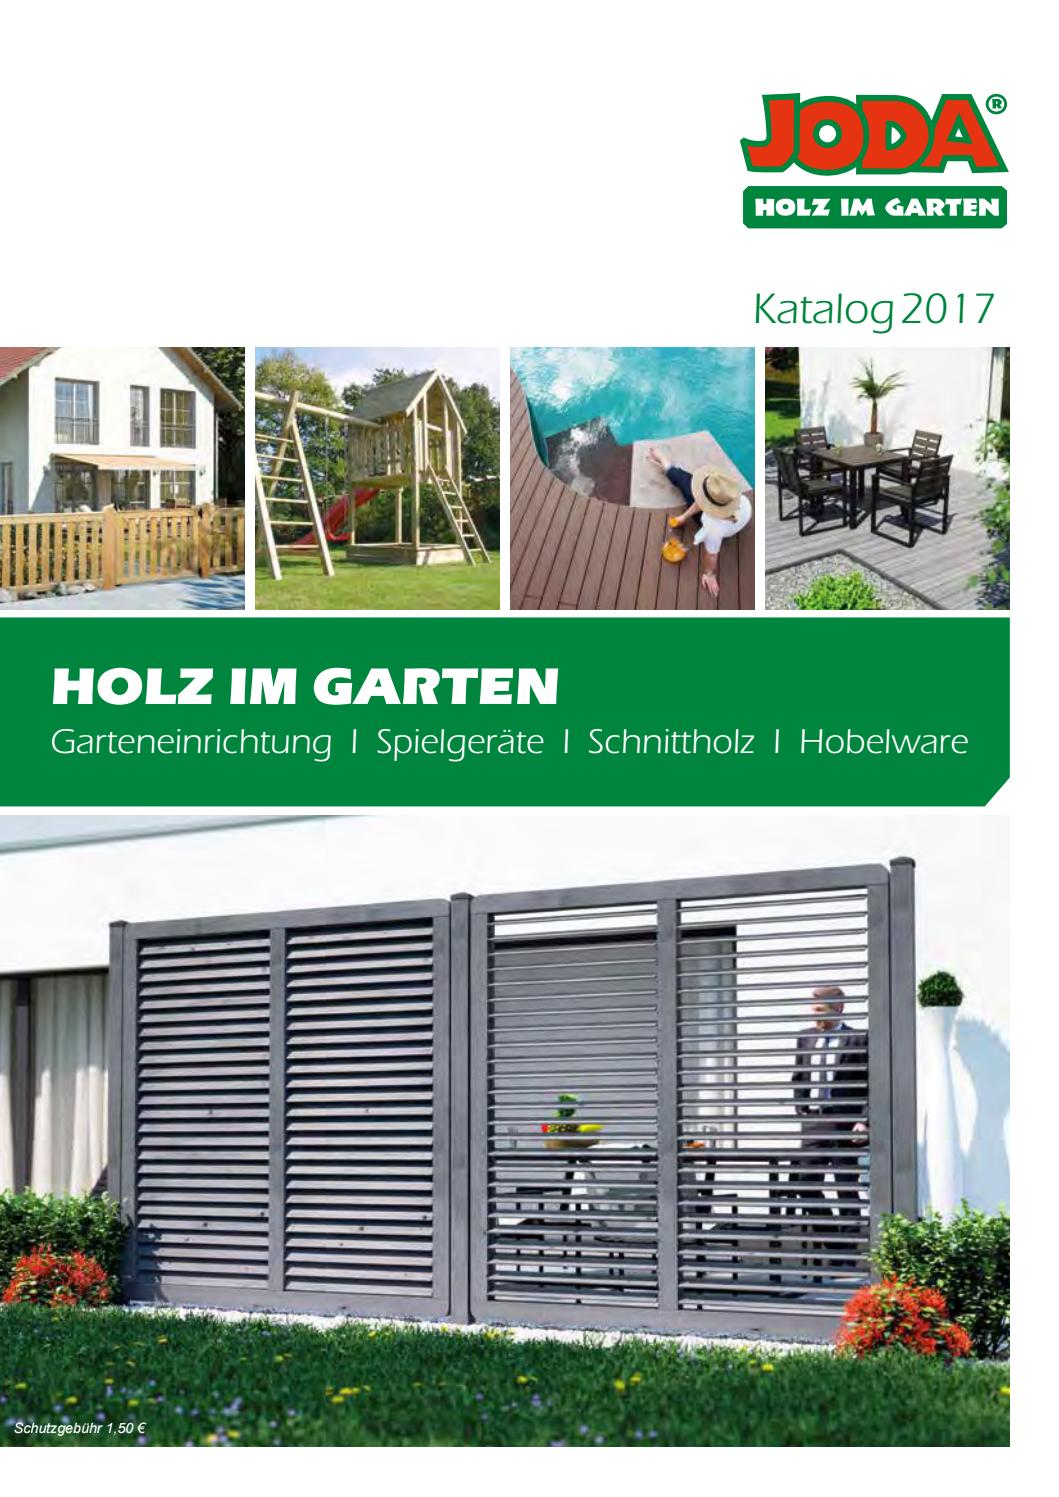 Joda | Holz im Garten 2017 by Opus Marketing GmbH - issuu